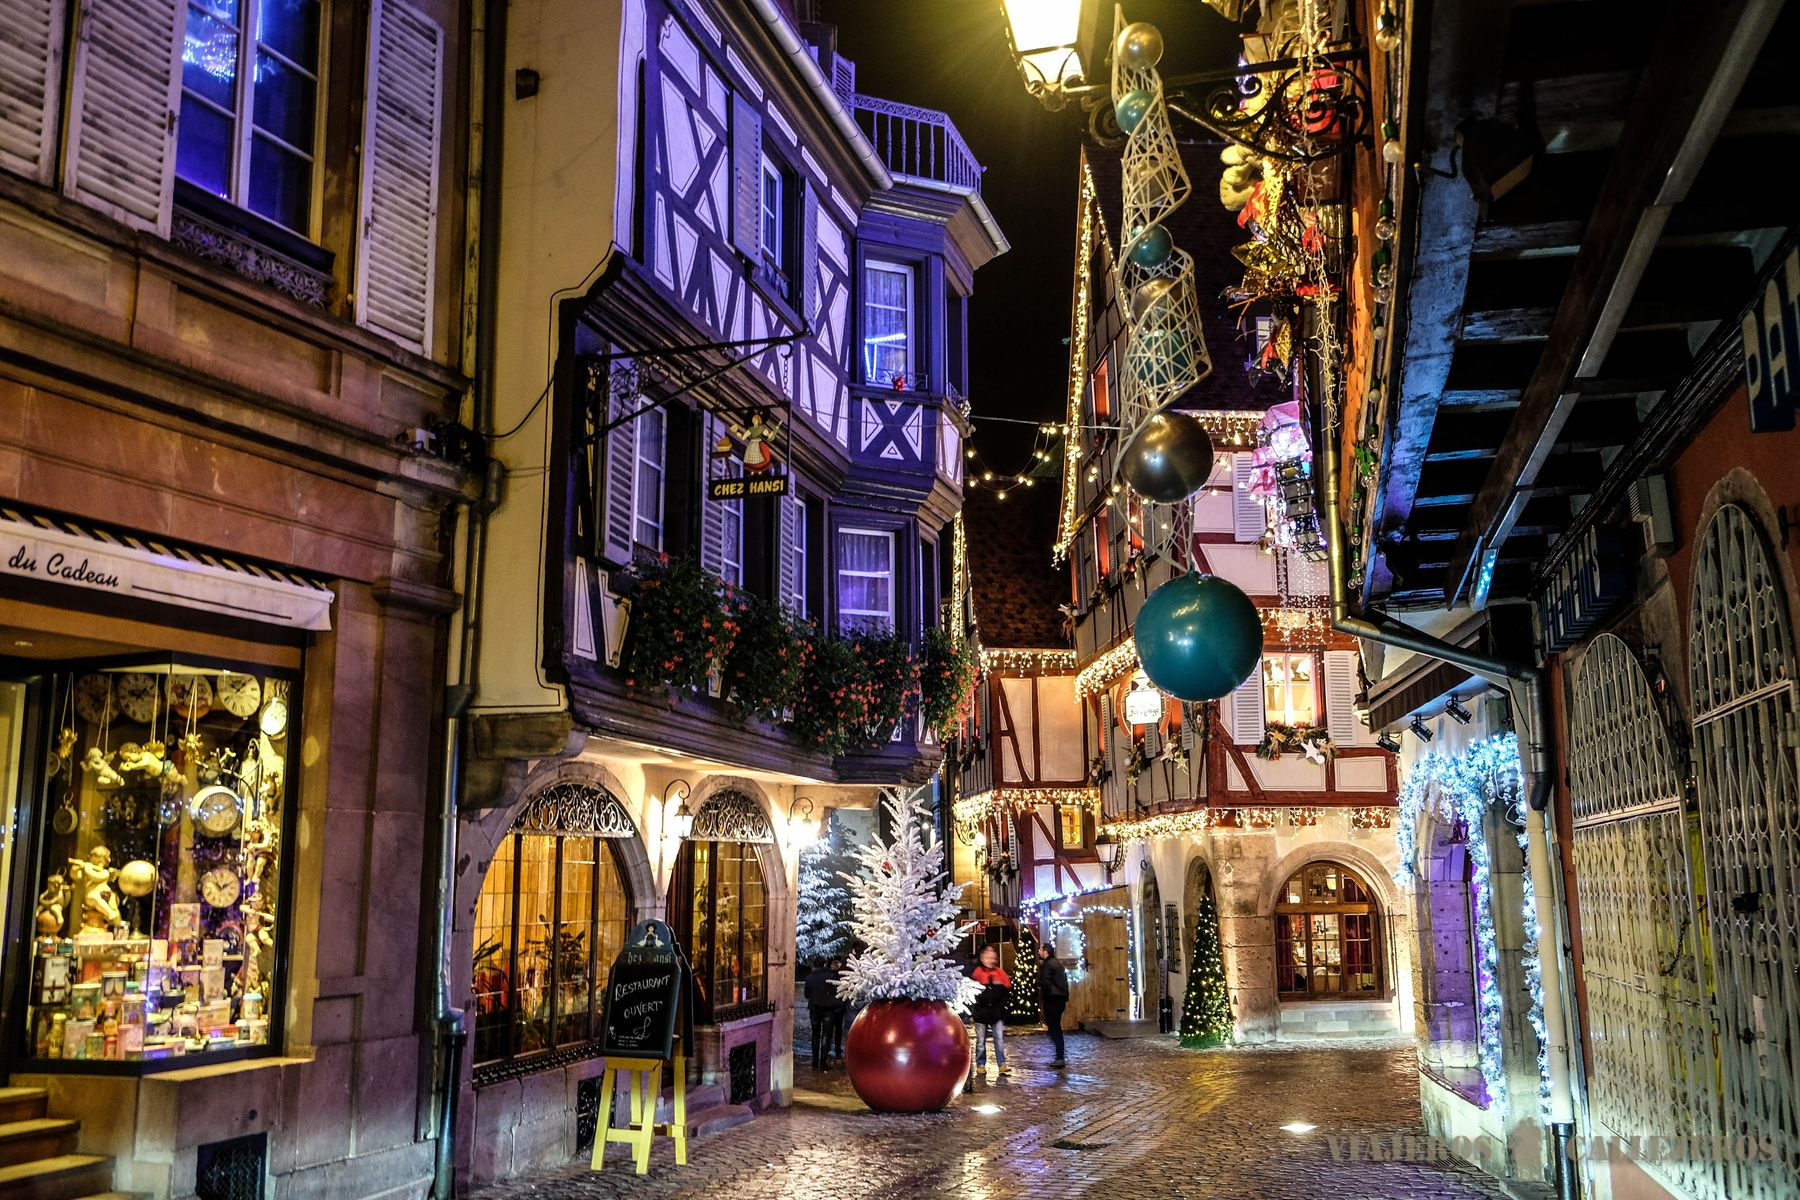 European Christmas markets are legendary and a great way to find unique gifts!